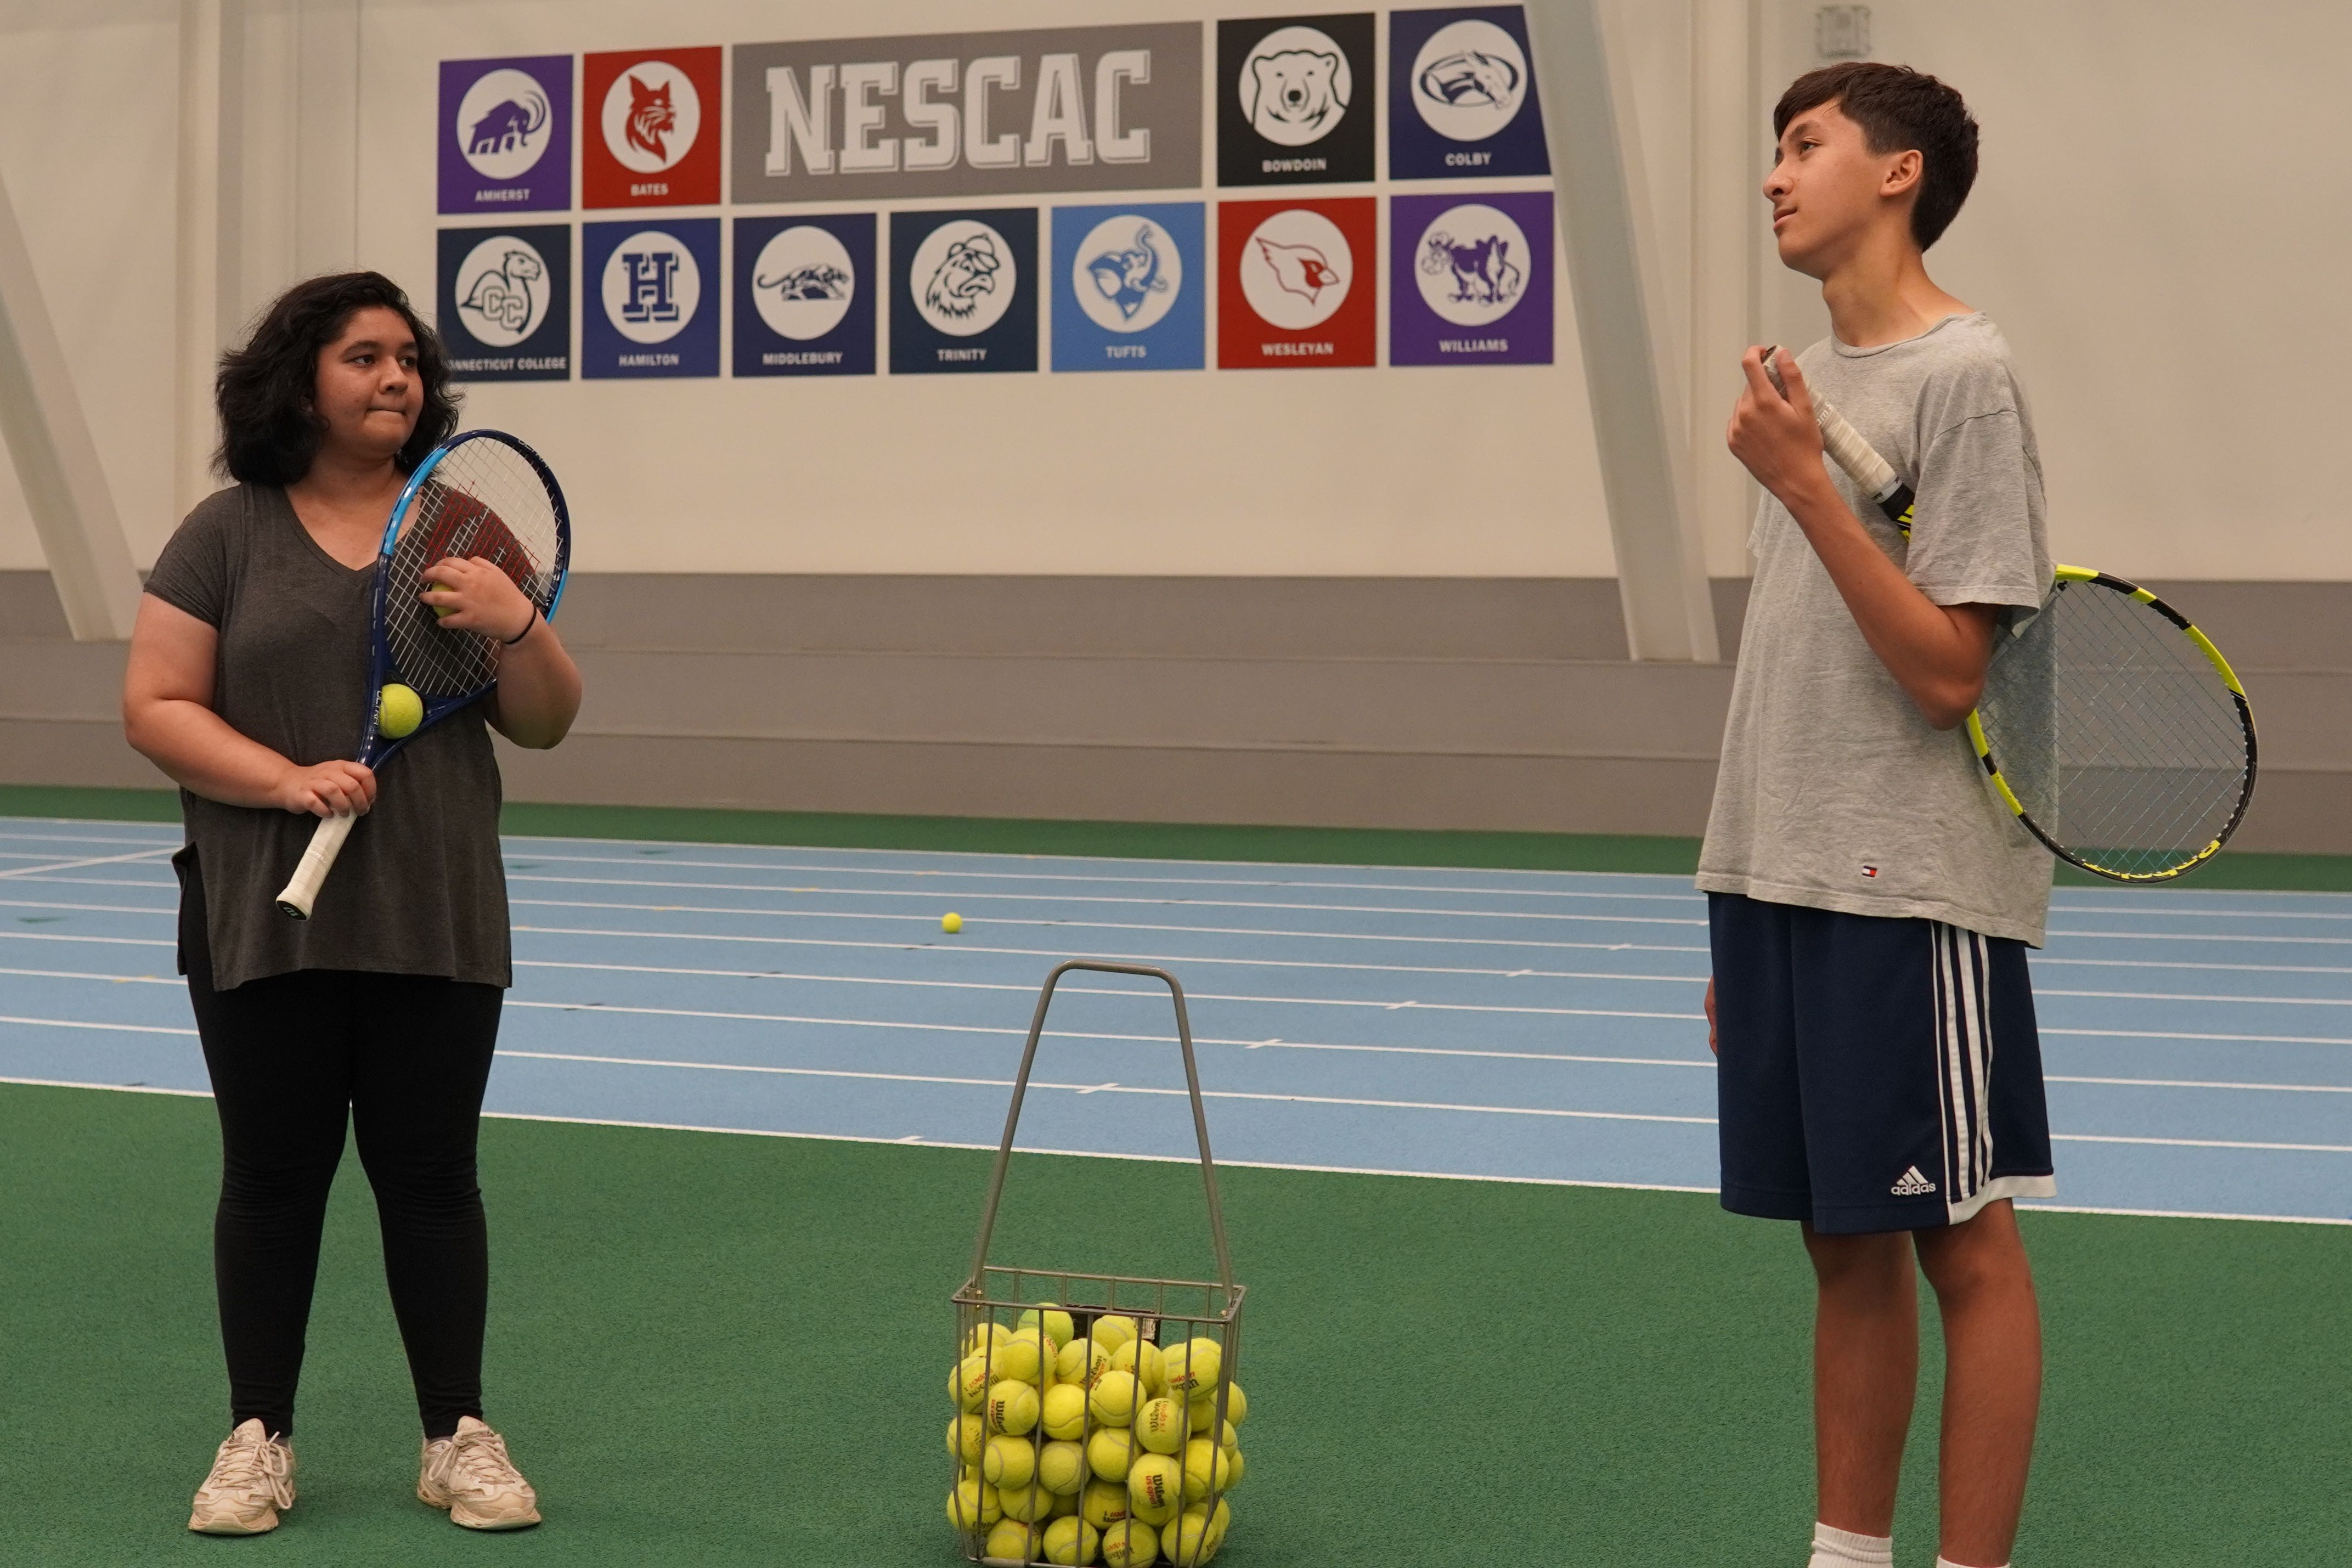 Students stand on the sides of a wire tennis ball bin and talk amongst themselves.